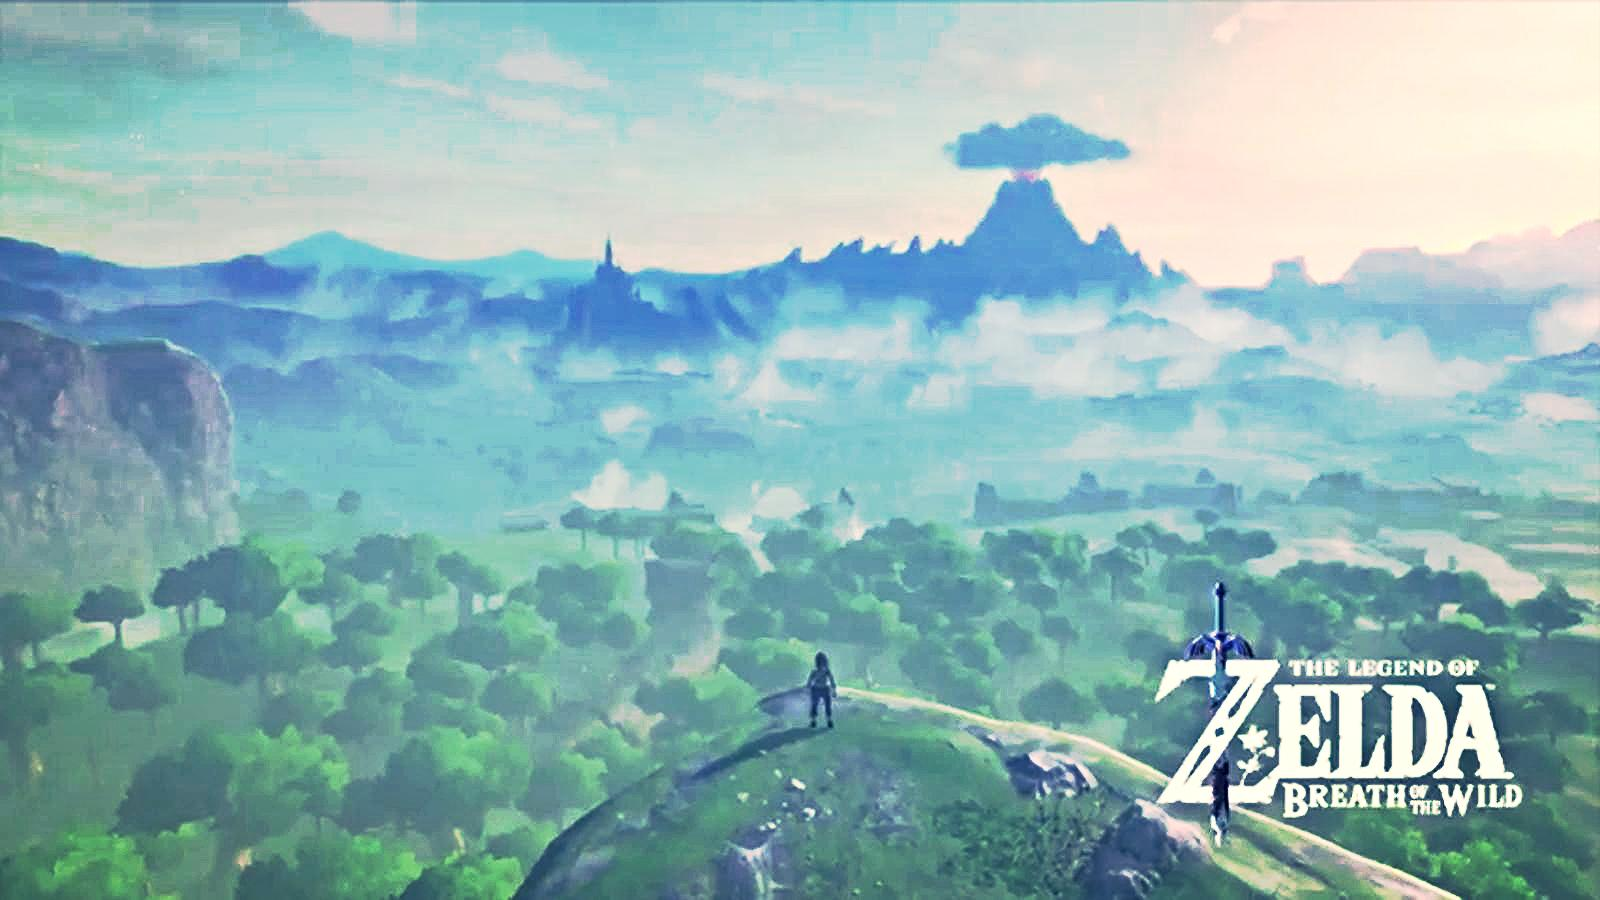 The Legend Of Zelda Breath Of The Wild Wallpapers Top Free The